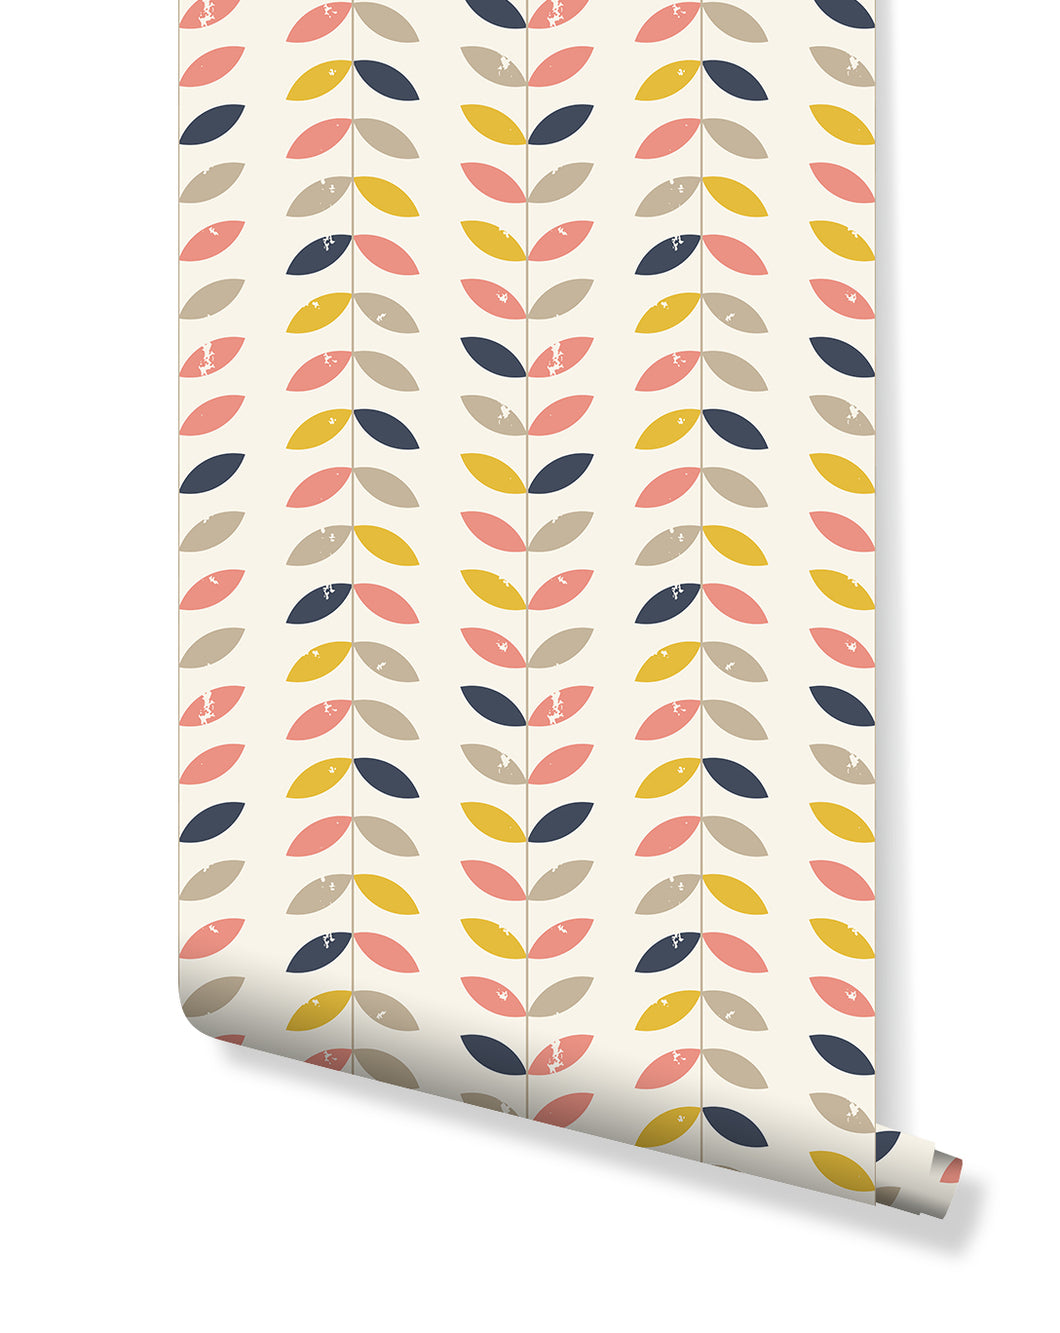 Self Adhesive Removable Wallpaper with Retro Style Twigs and Leaves in Pastel Colors, Geometric Chevron Style Wall Paper Great for Home Improvement Wall Decor CC166 …